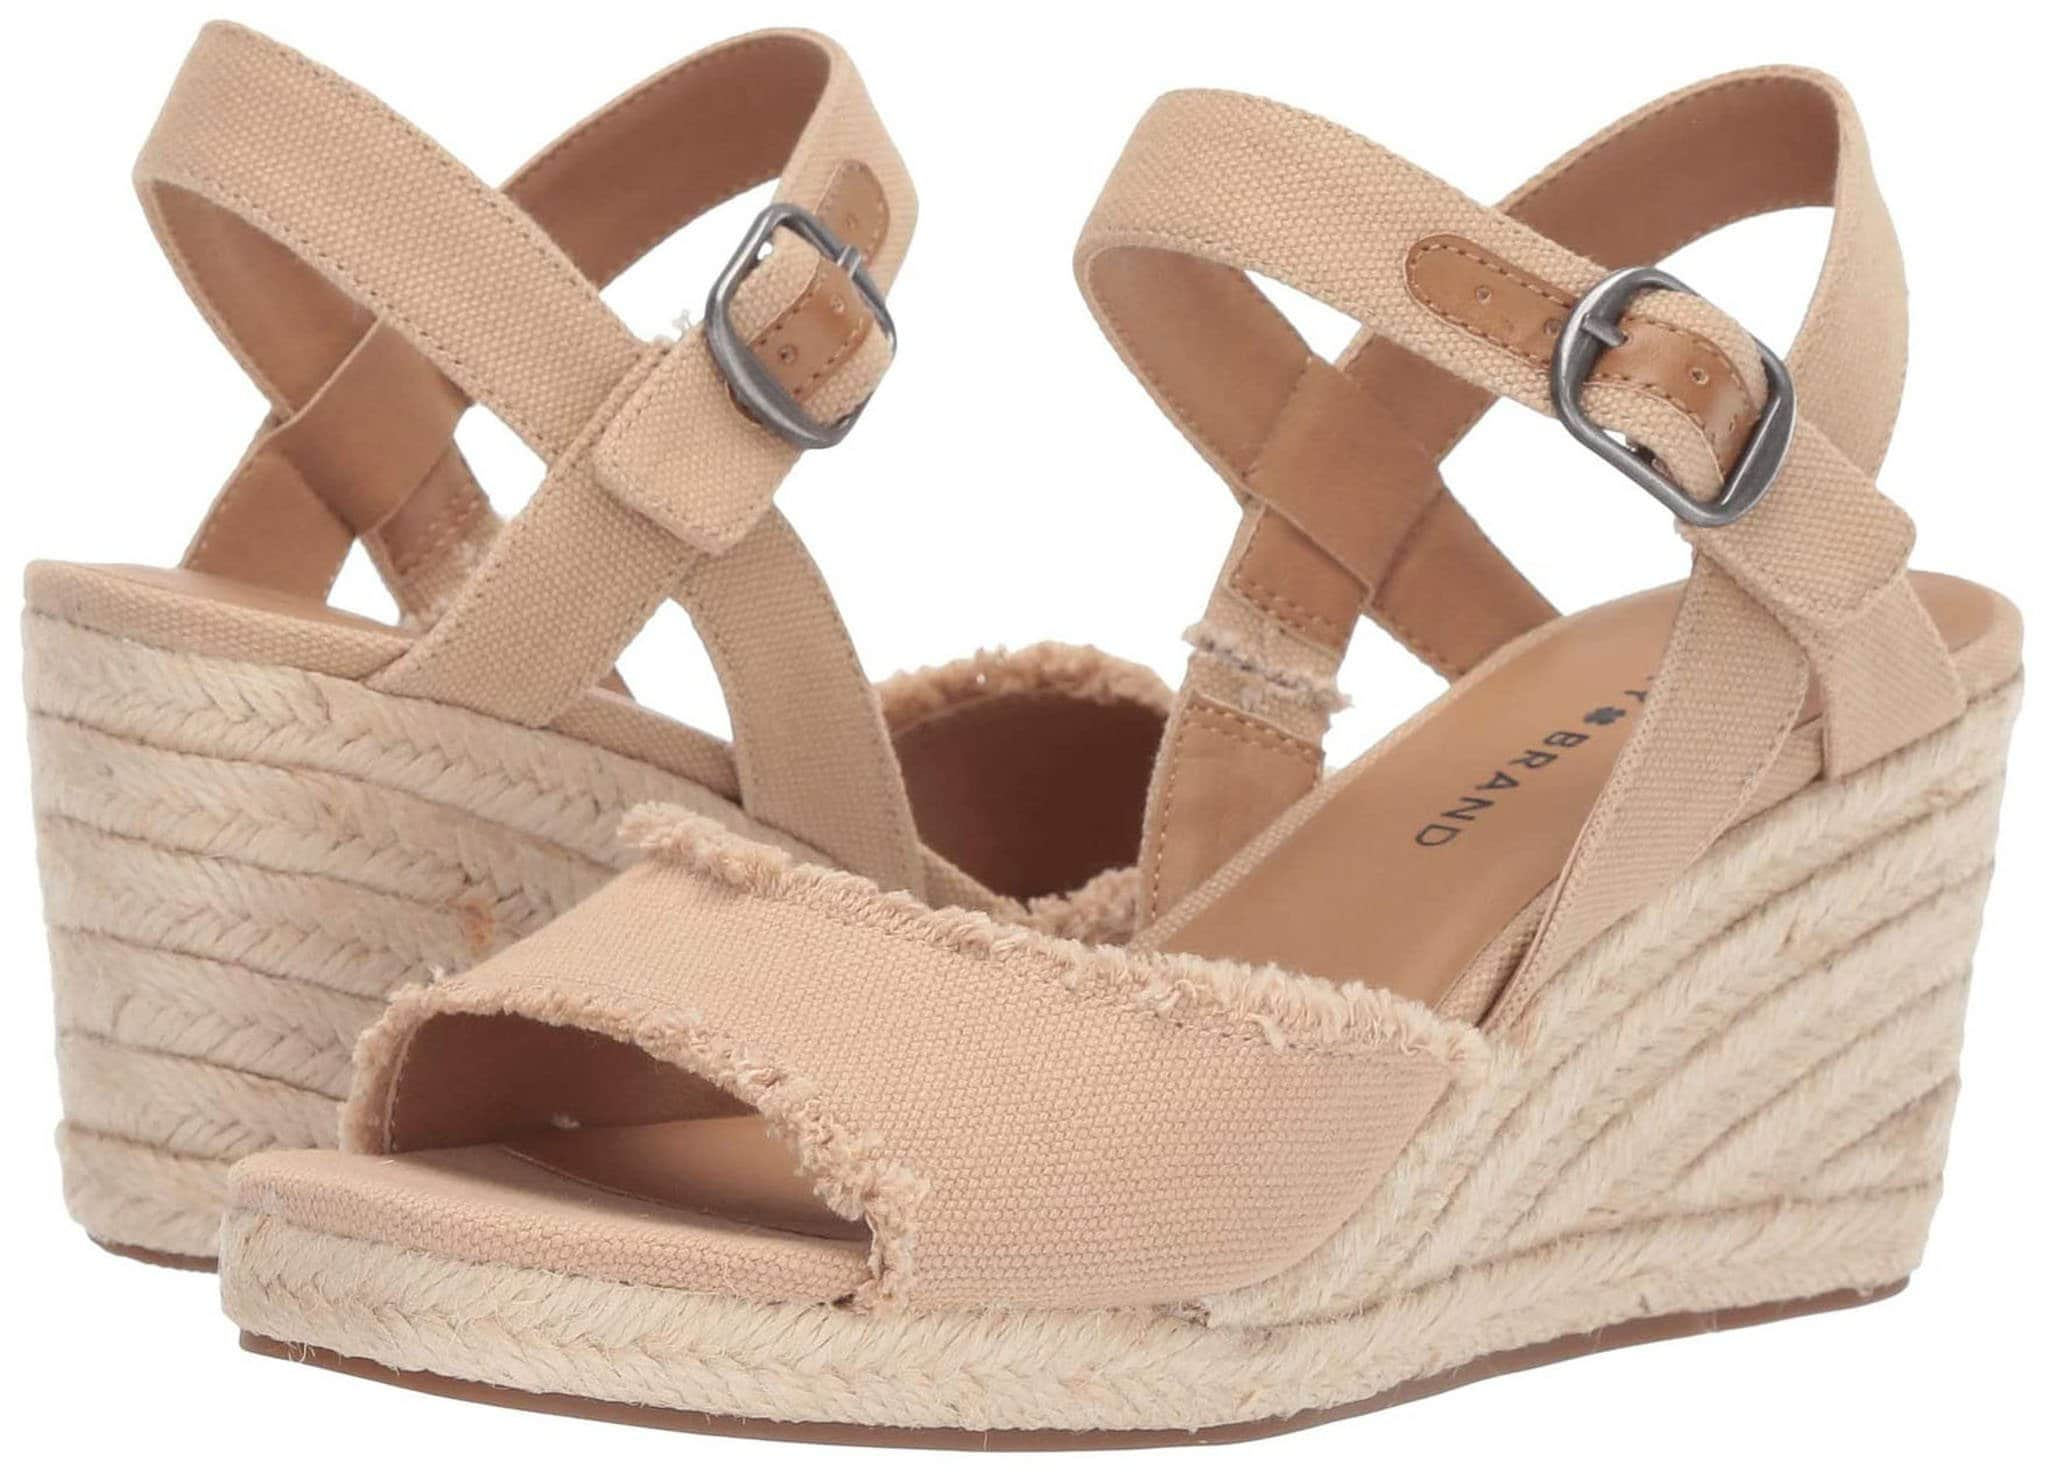 Espadrille wedge sandals work well with midi dresses for a casual yet flirty and feminine look